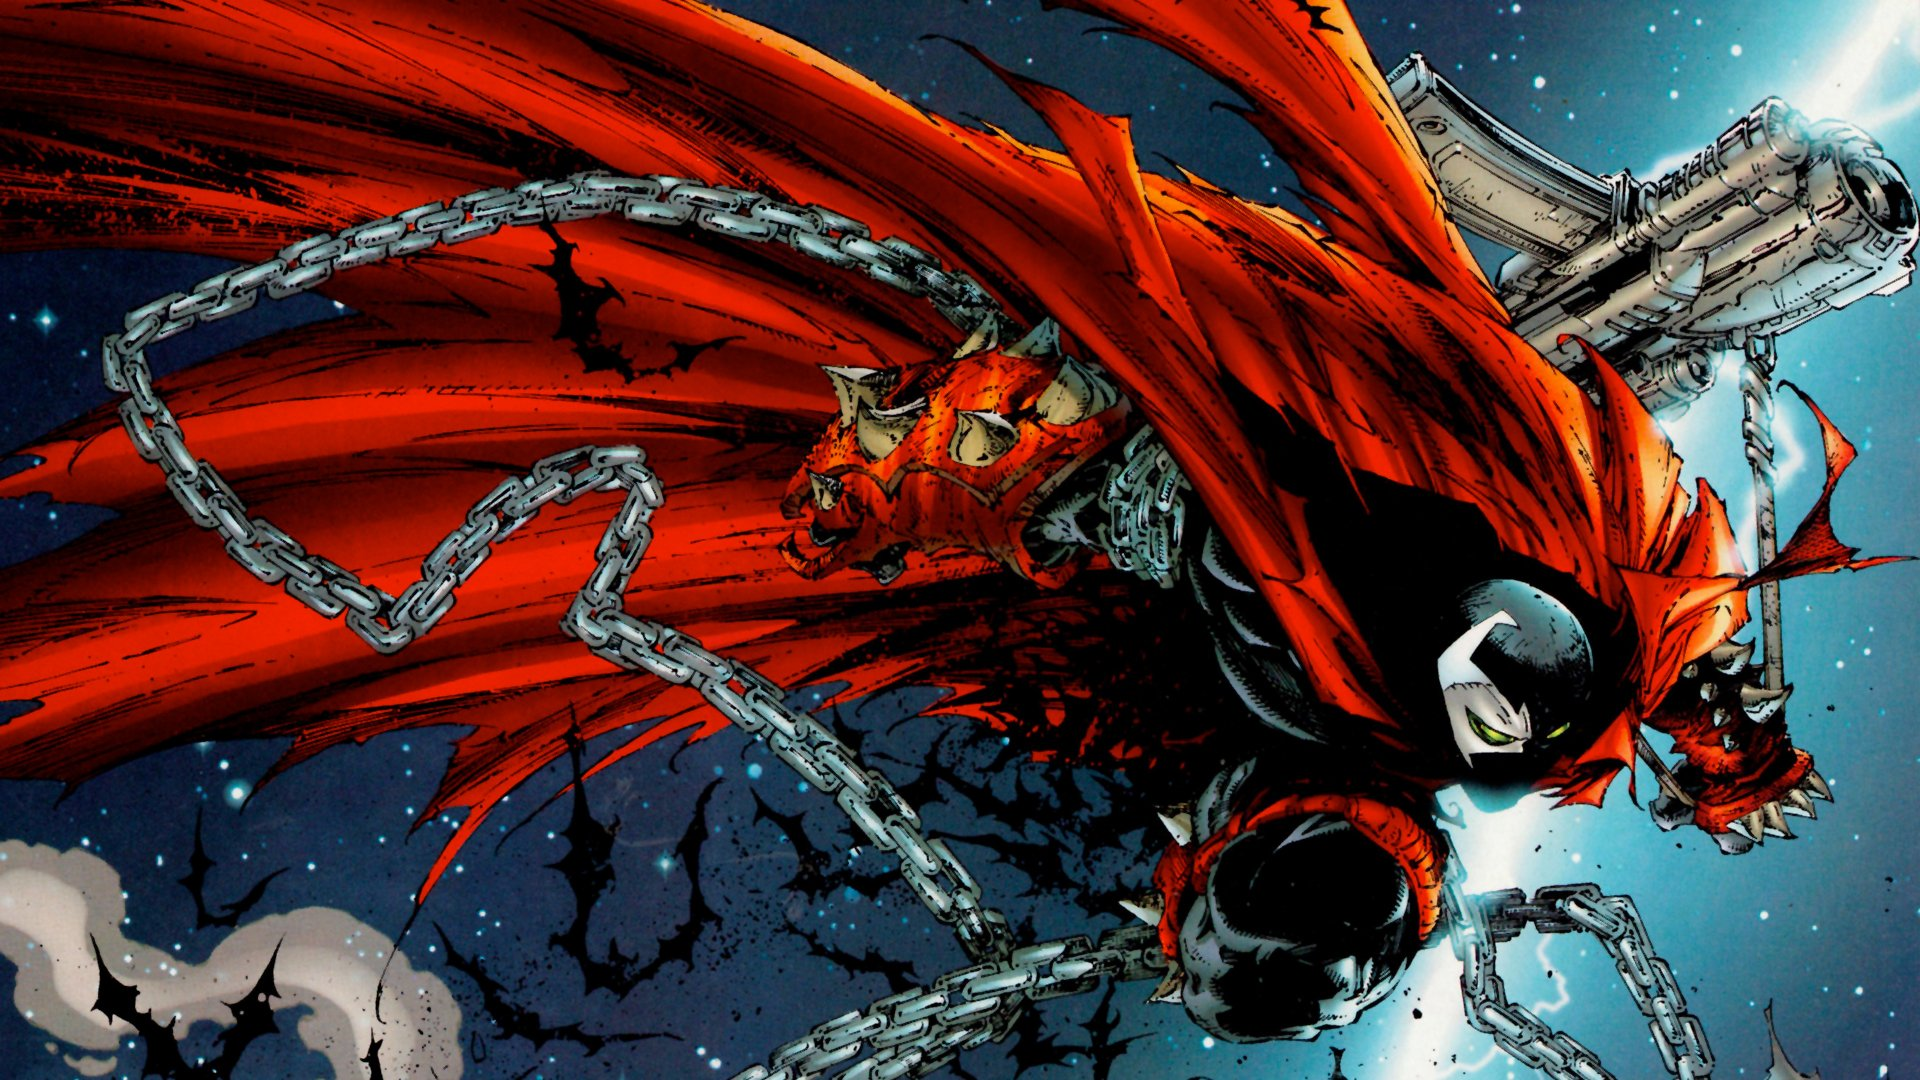 Spawn might join the Mortal Kombat 11 roster screenshot